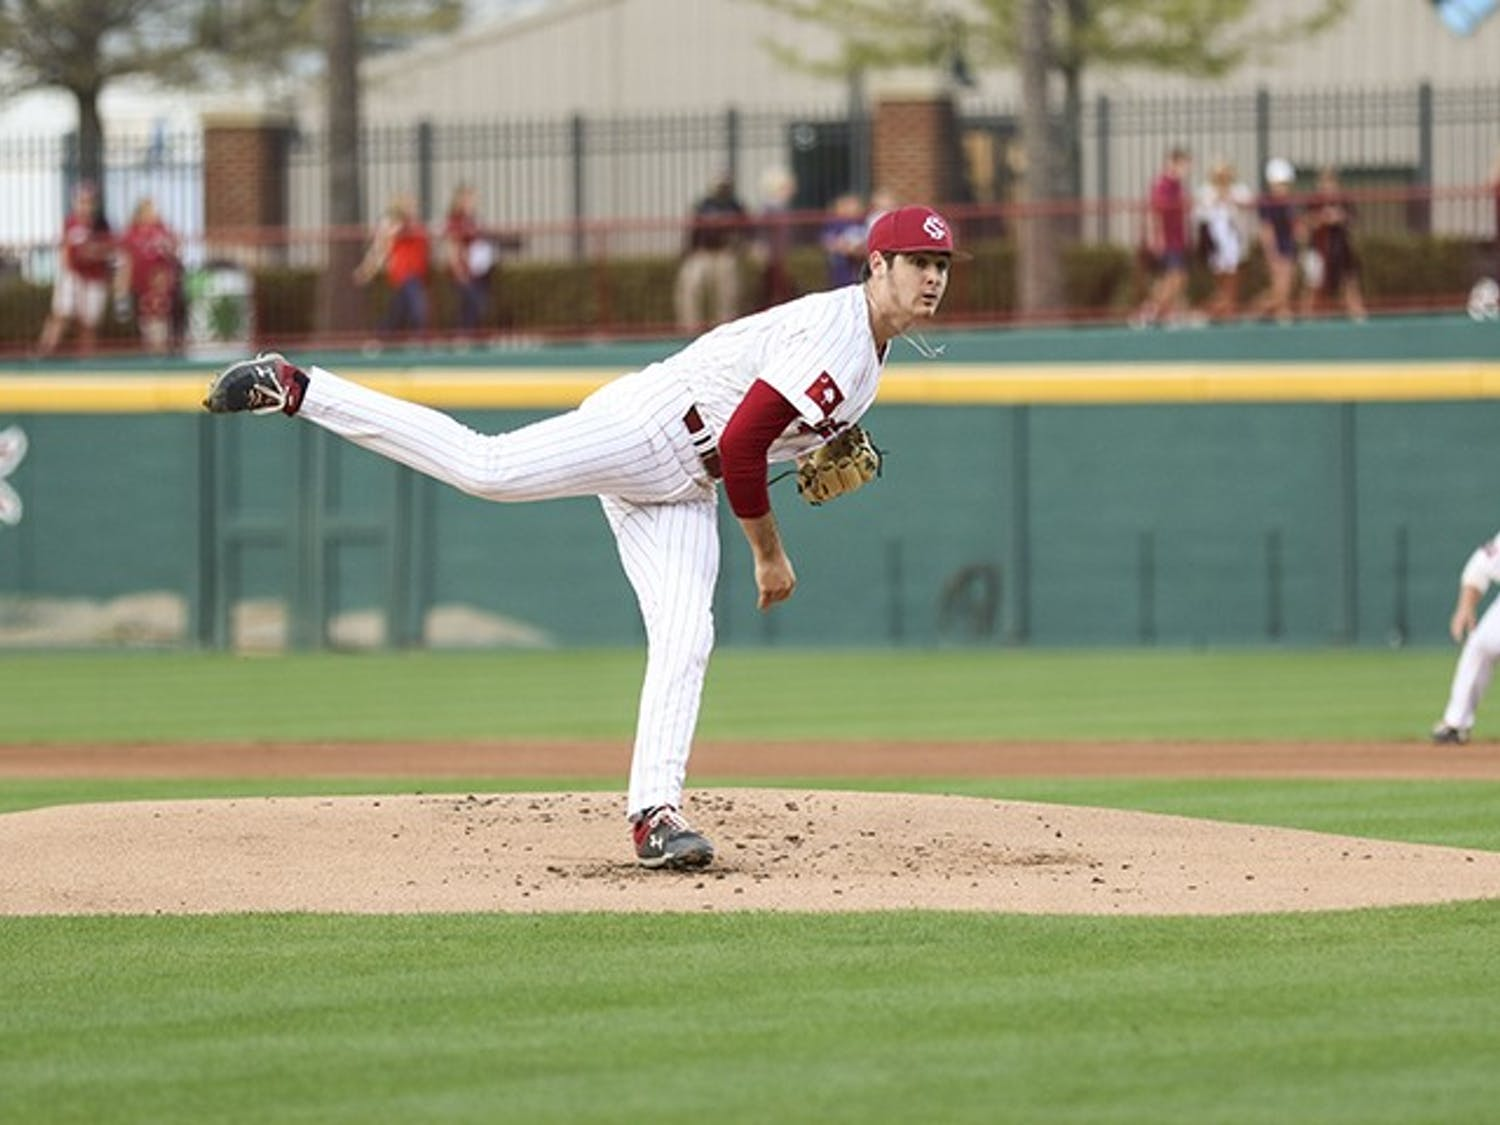 Freshman Daniel Lloyd pitches the ball during the Friday night game against Auburn at Founders Park.